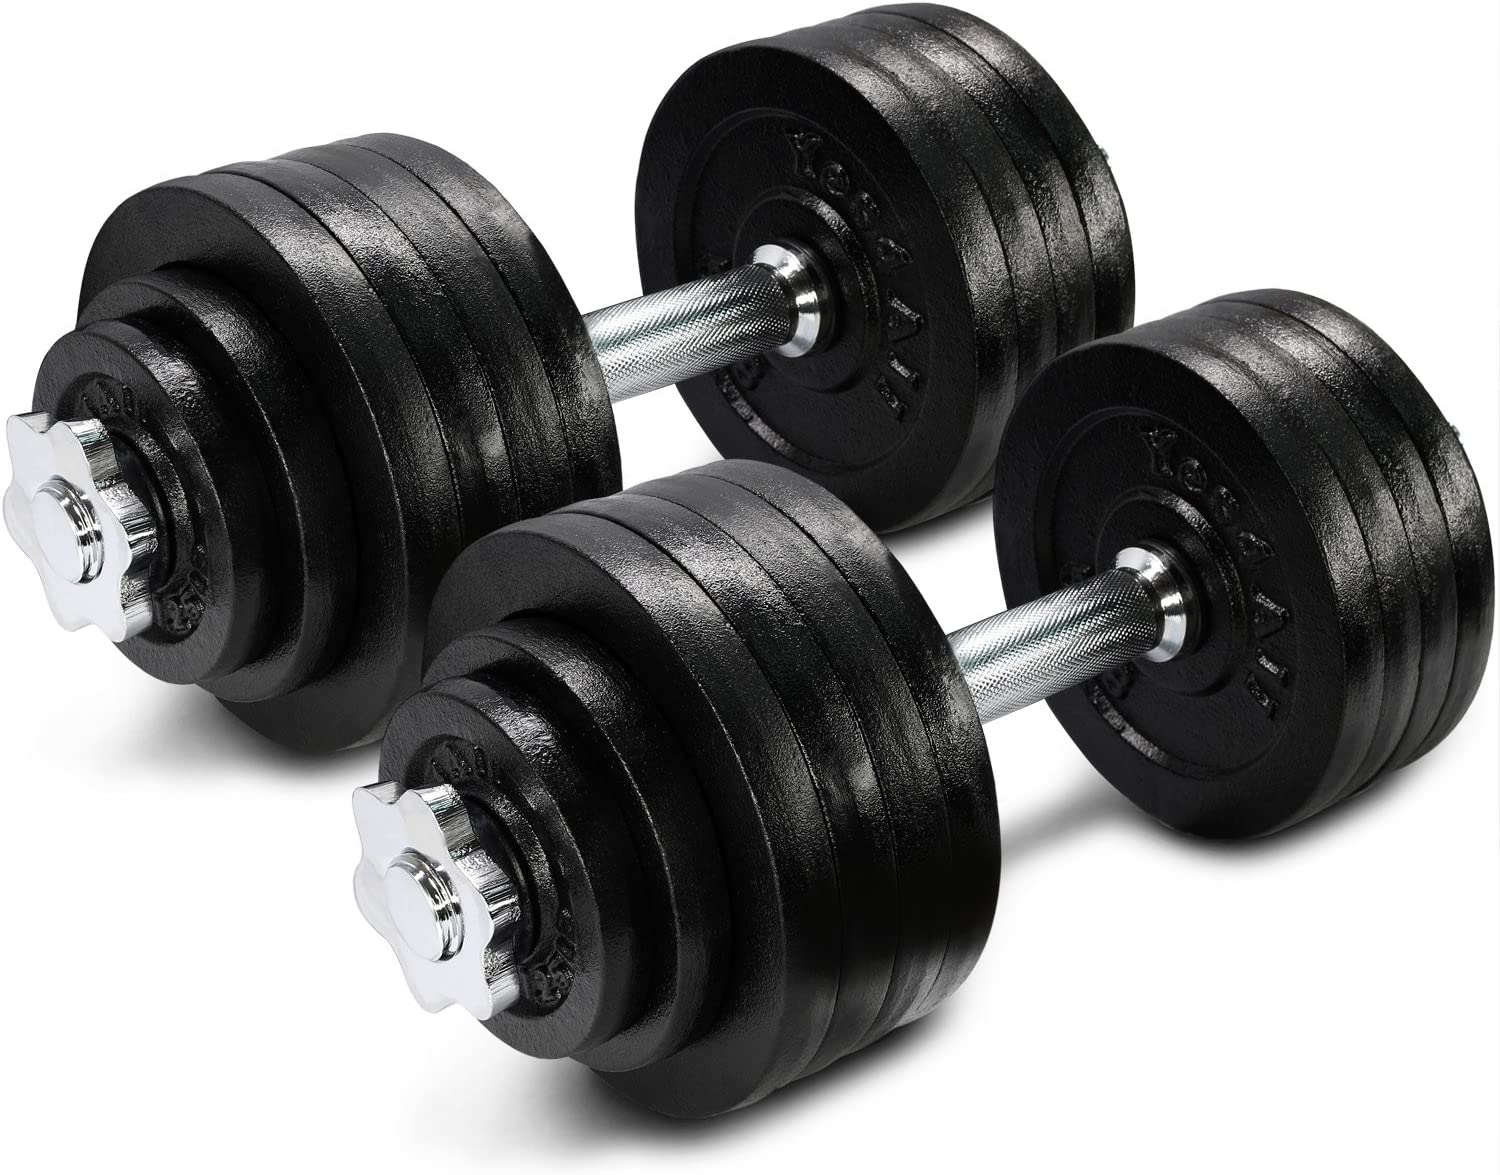 Yes4All Adjustable Dumbbells set, 105 pounds, best weight sets